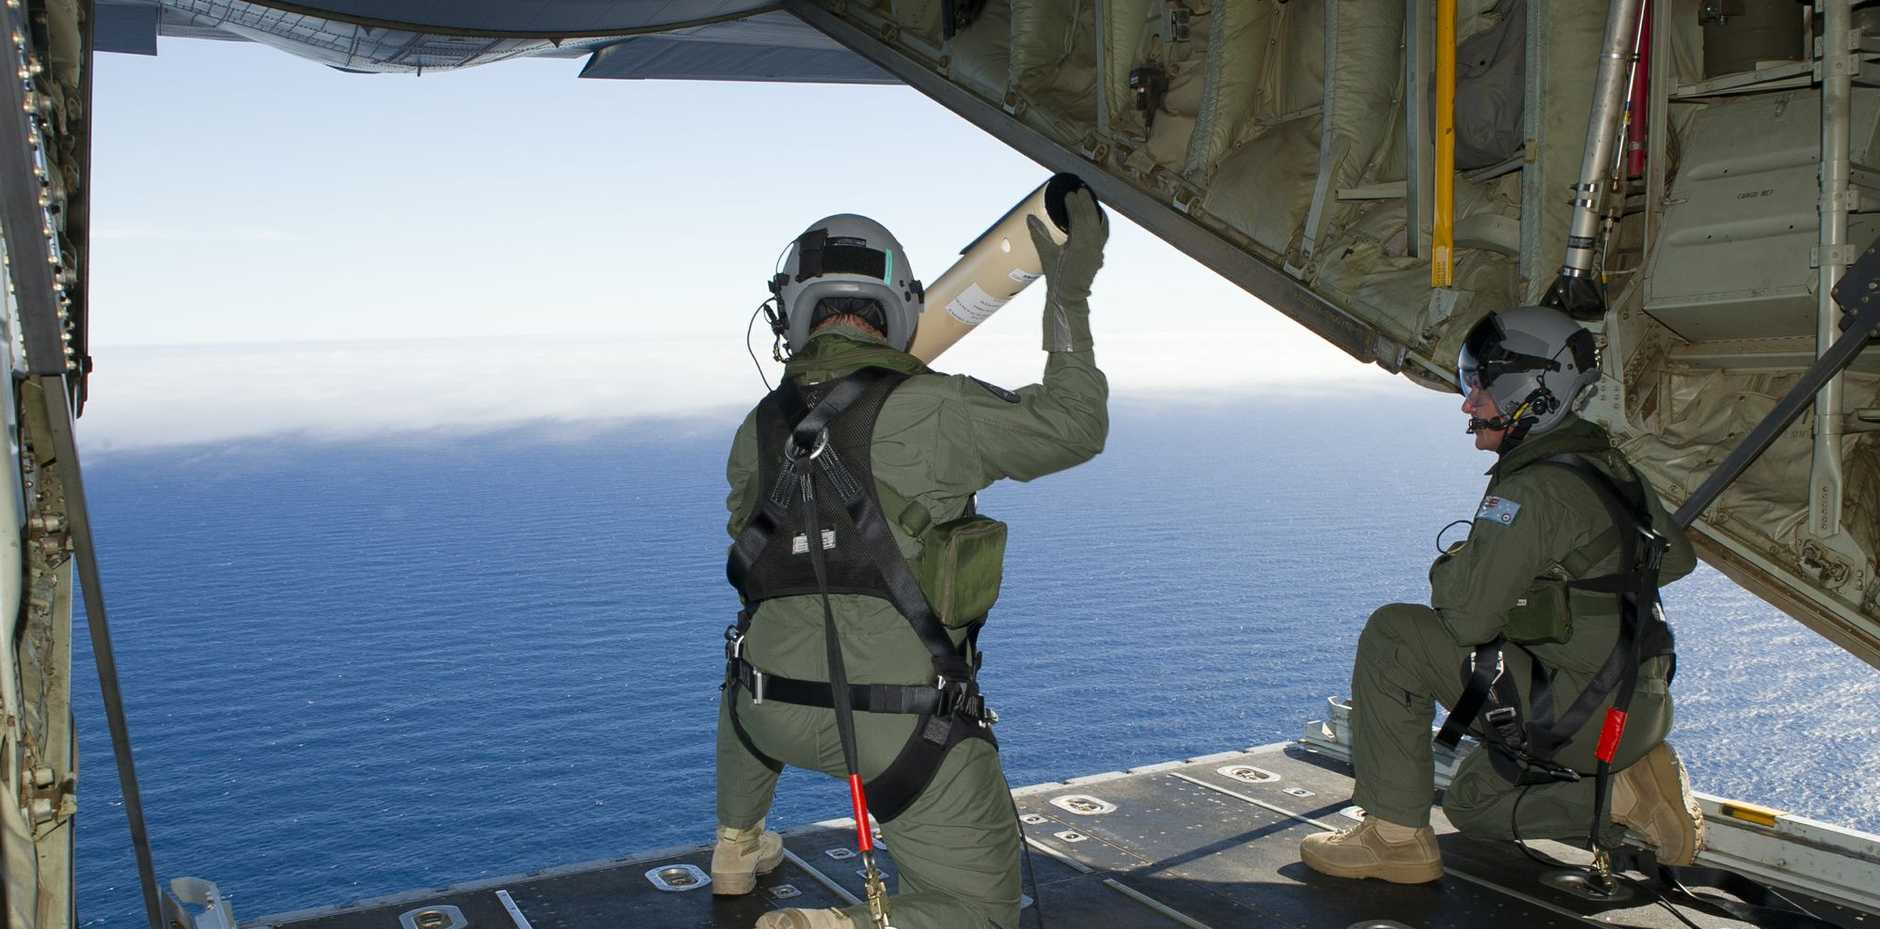 A photo from the Australian Defence Force showing the search for missing flight MH370 off the Western Australian coastline.